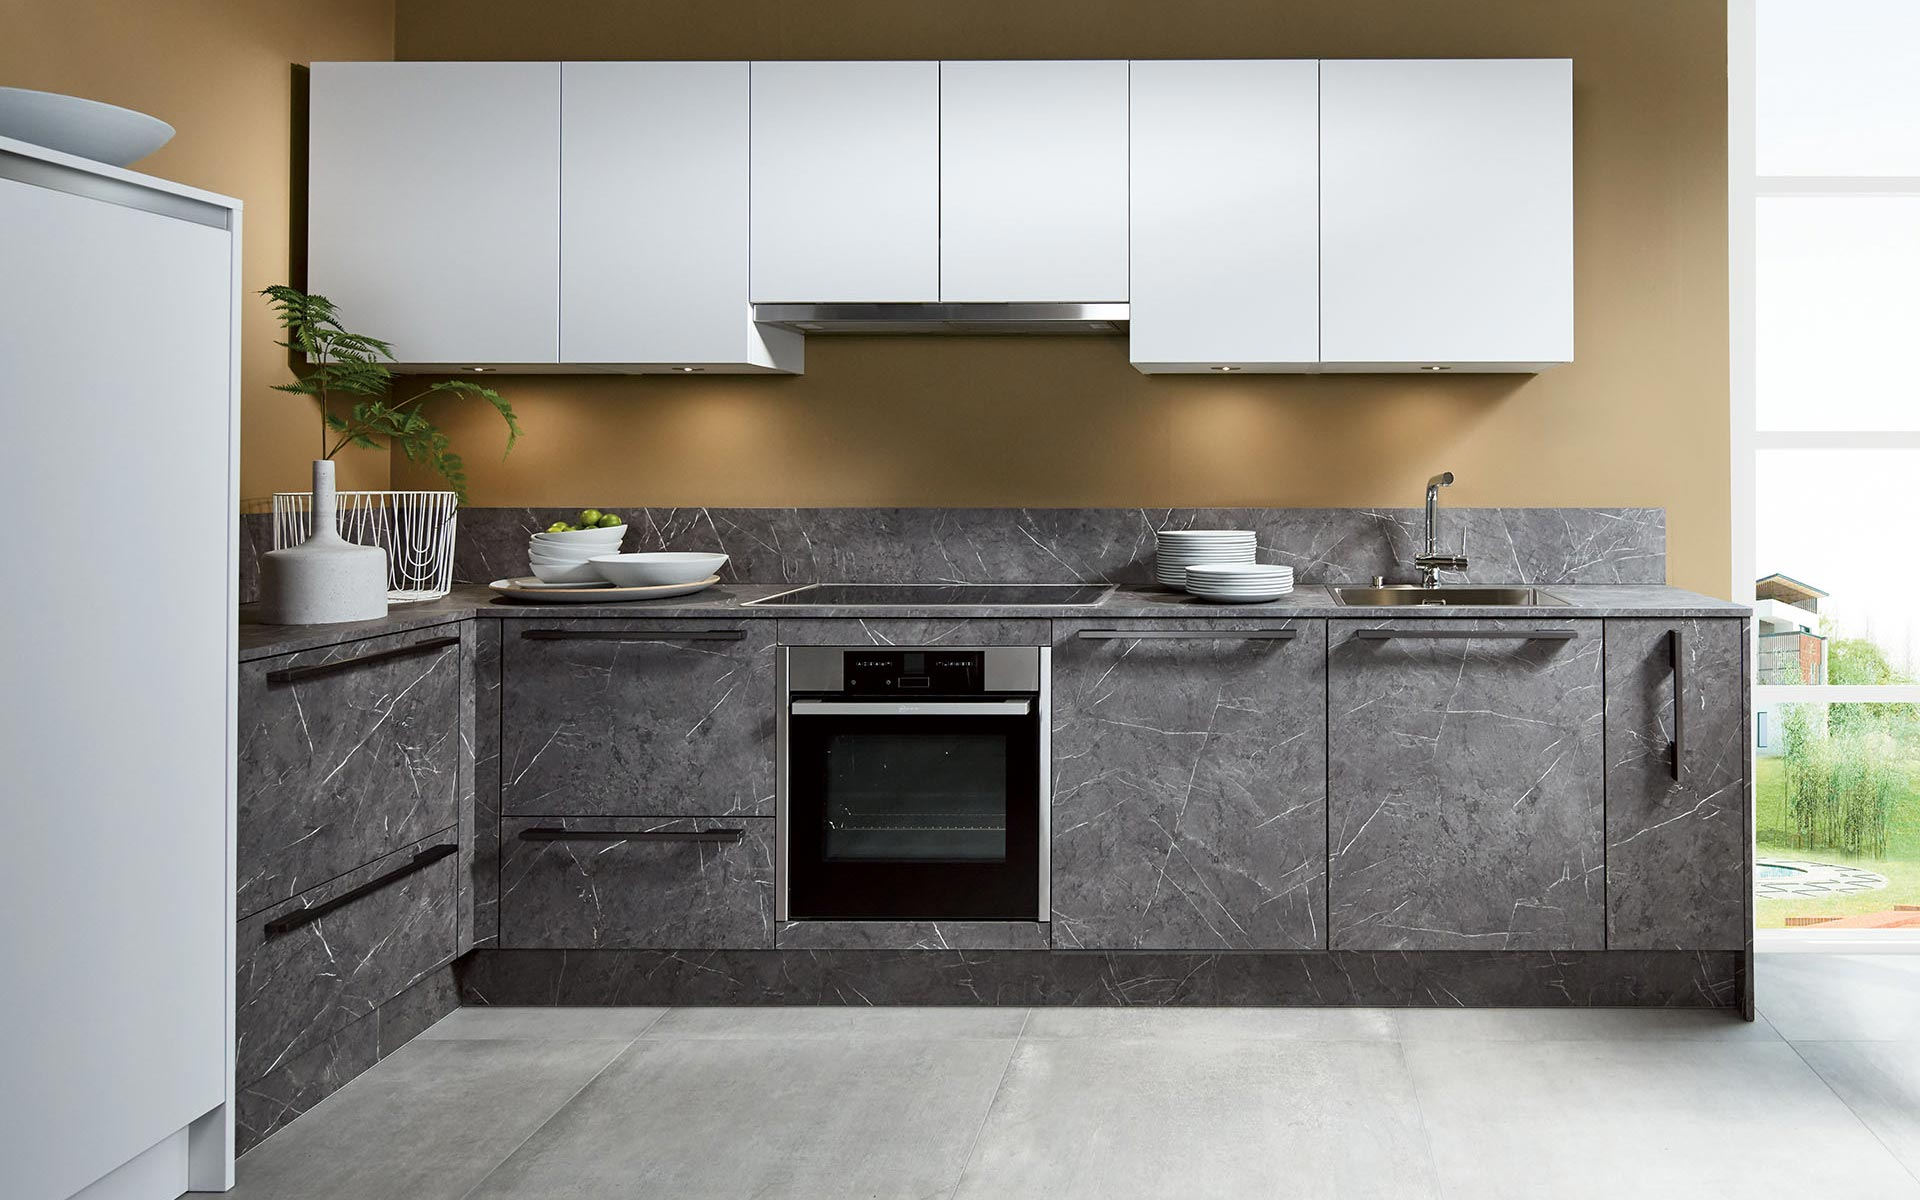 Toronto: Kitchens from Germany, Europe. Opaco Grigio • Marble Anthrazit